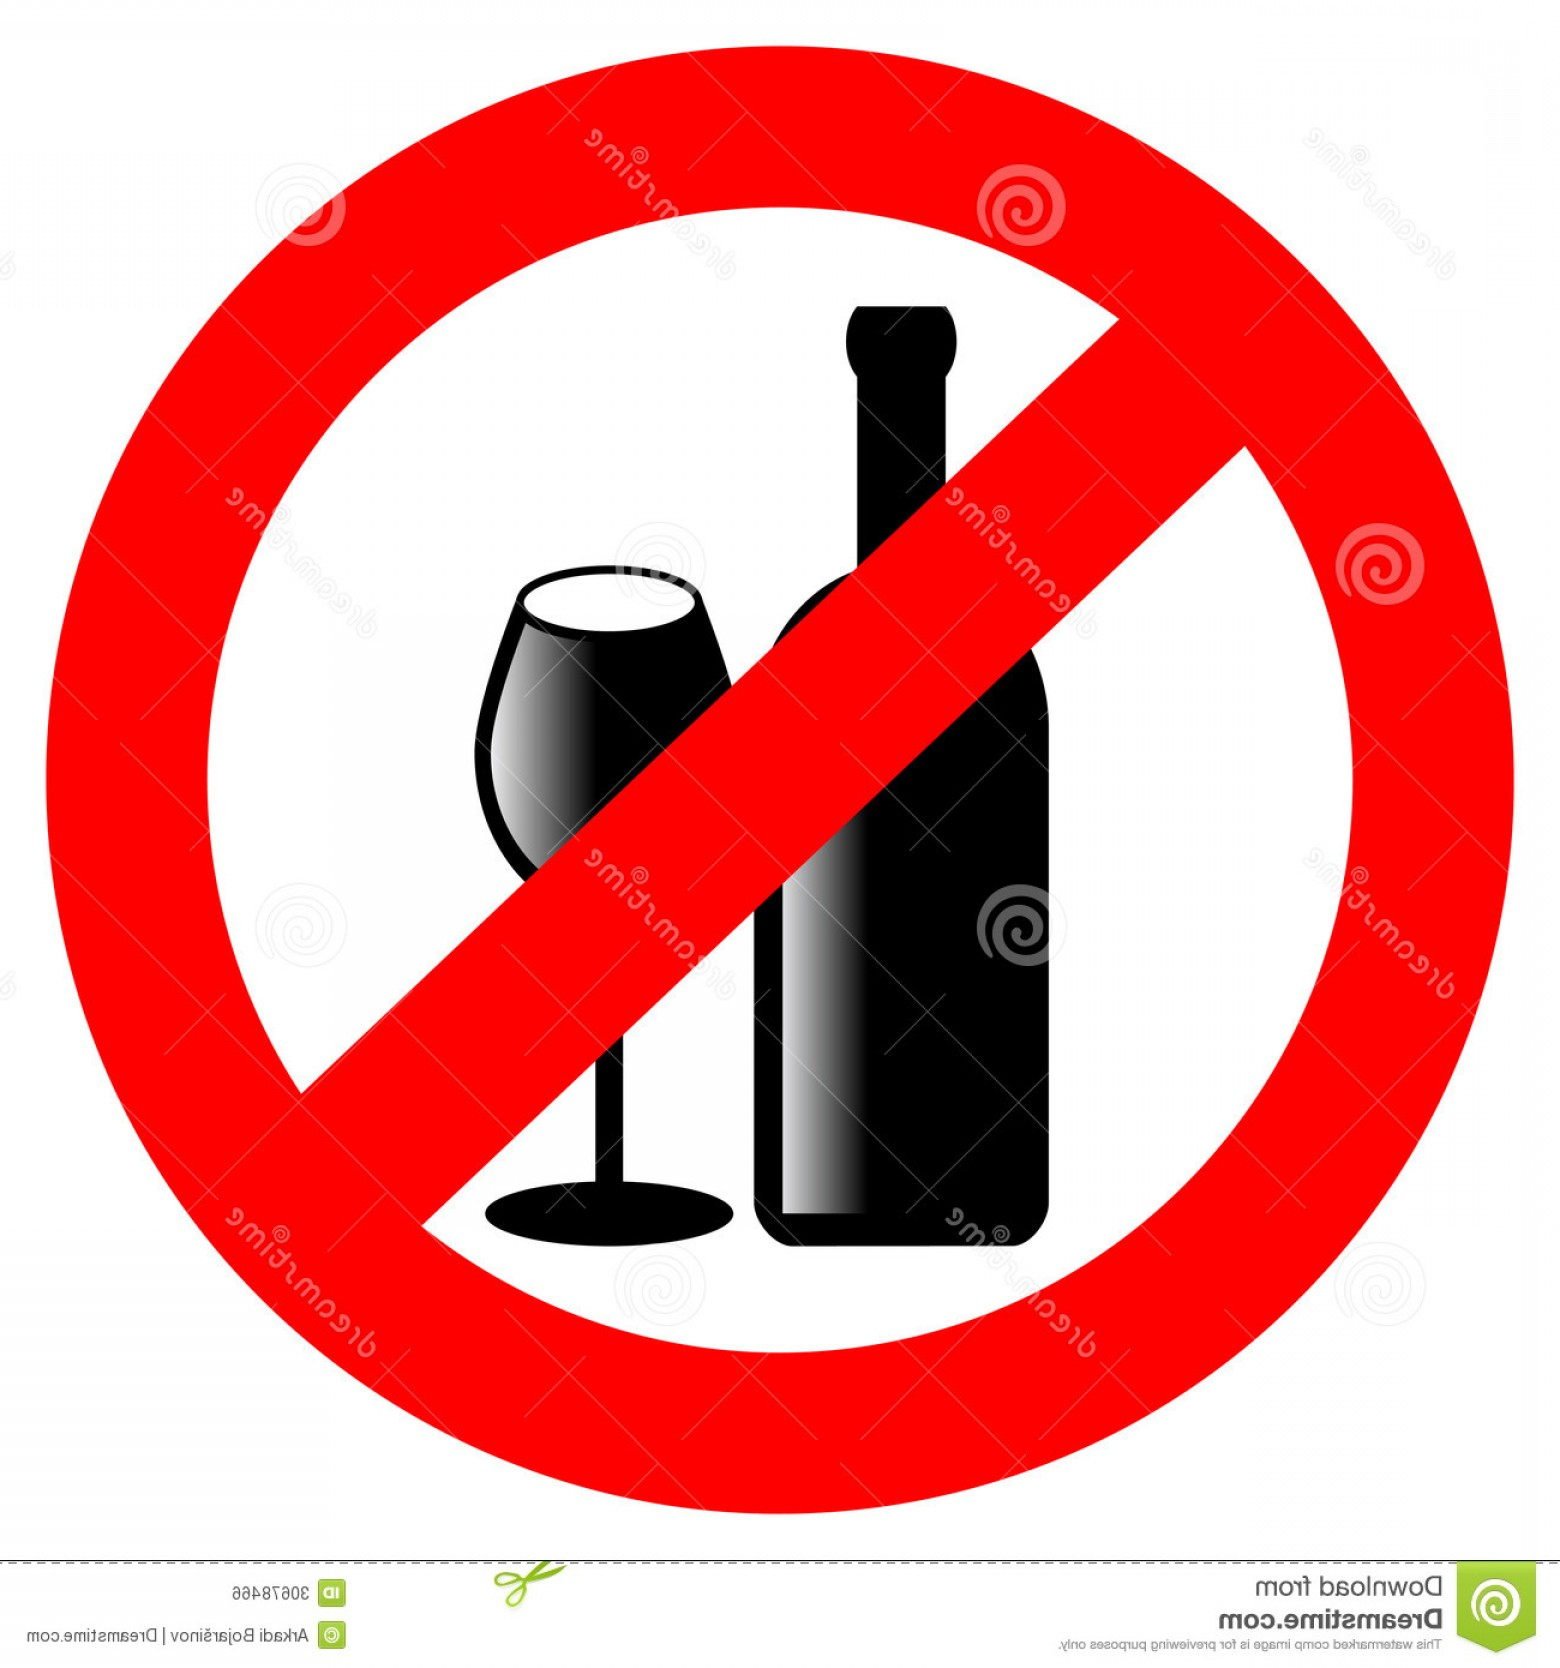 Vector No Alcohol: Royalty Free Stock Image No Alcohol Vector Sign Isolated White Image